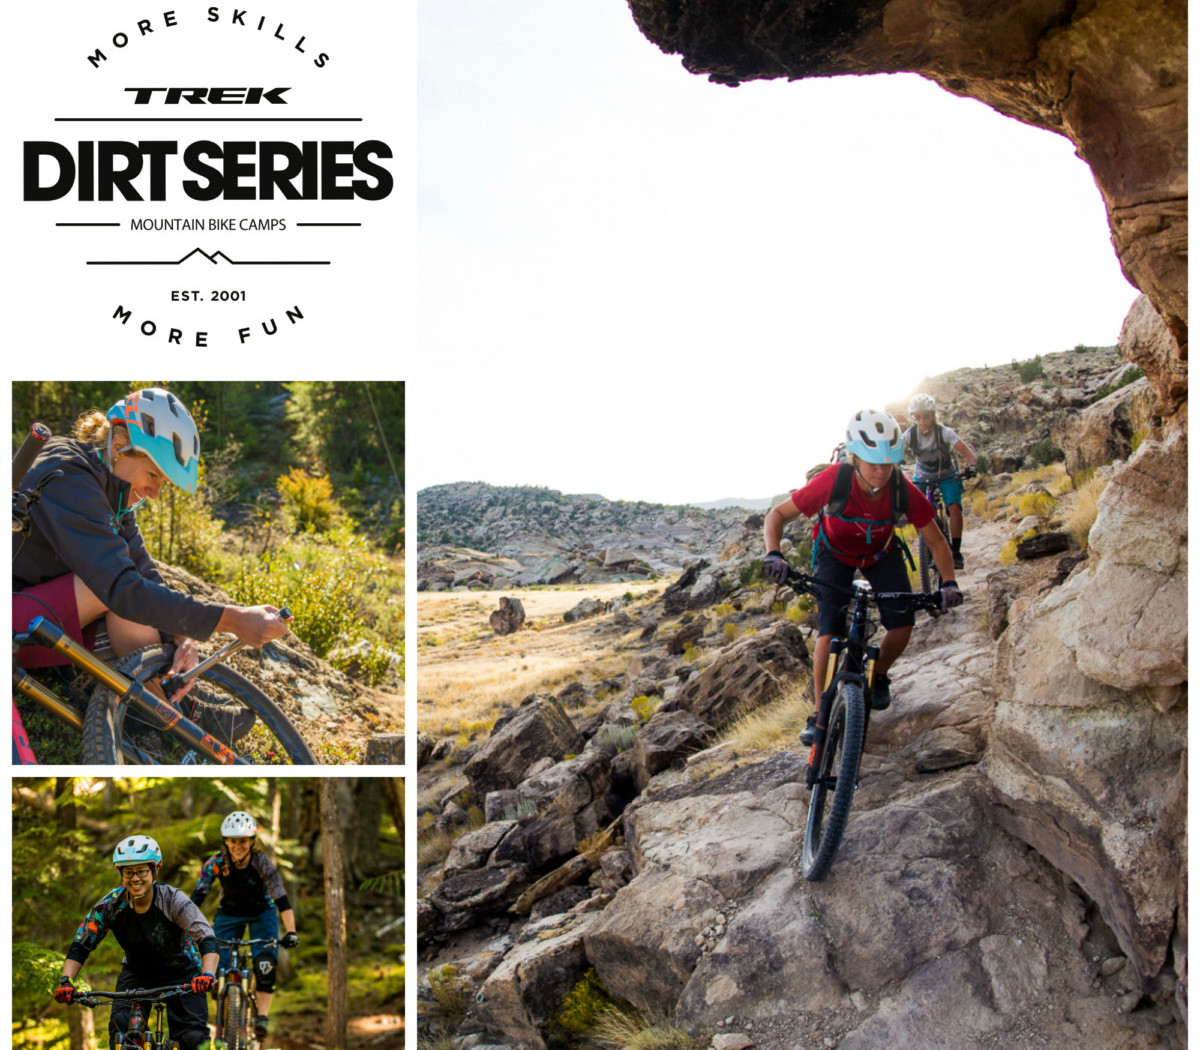 Trek Dirt Series Camps for Guys and Gals